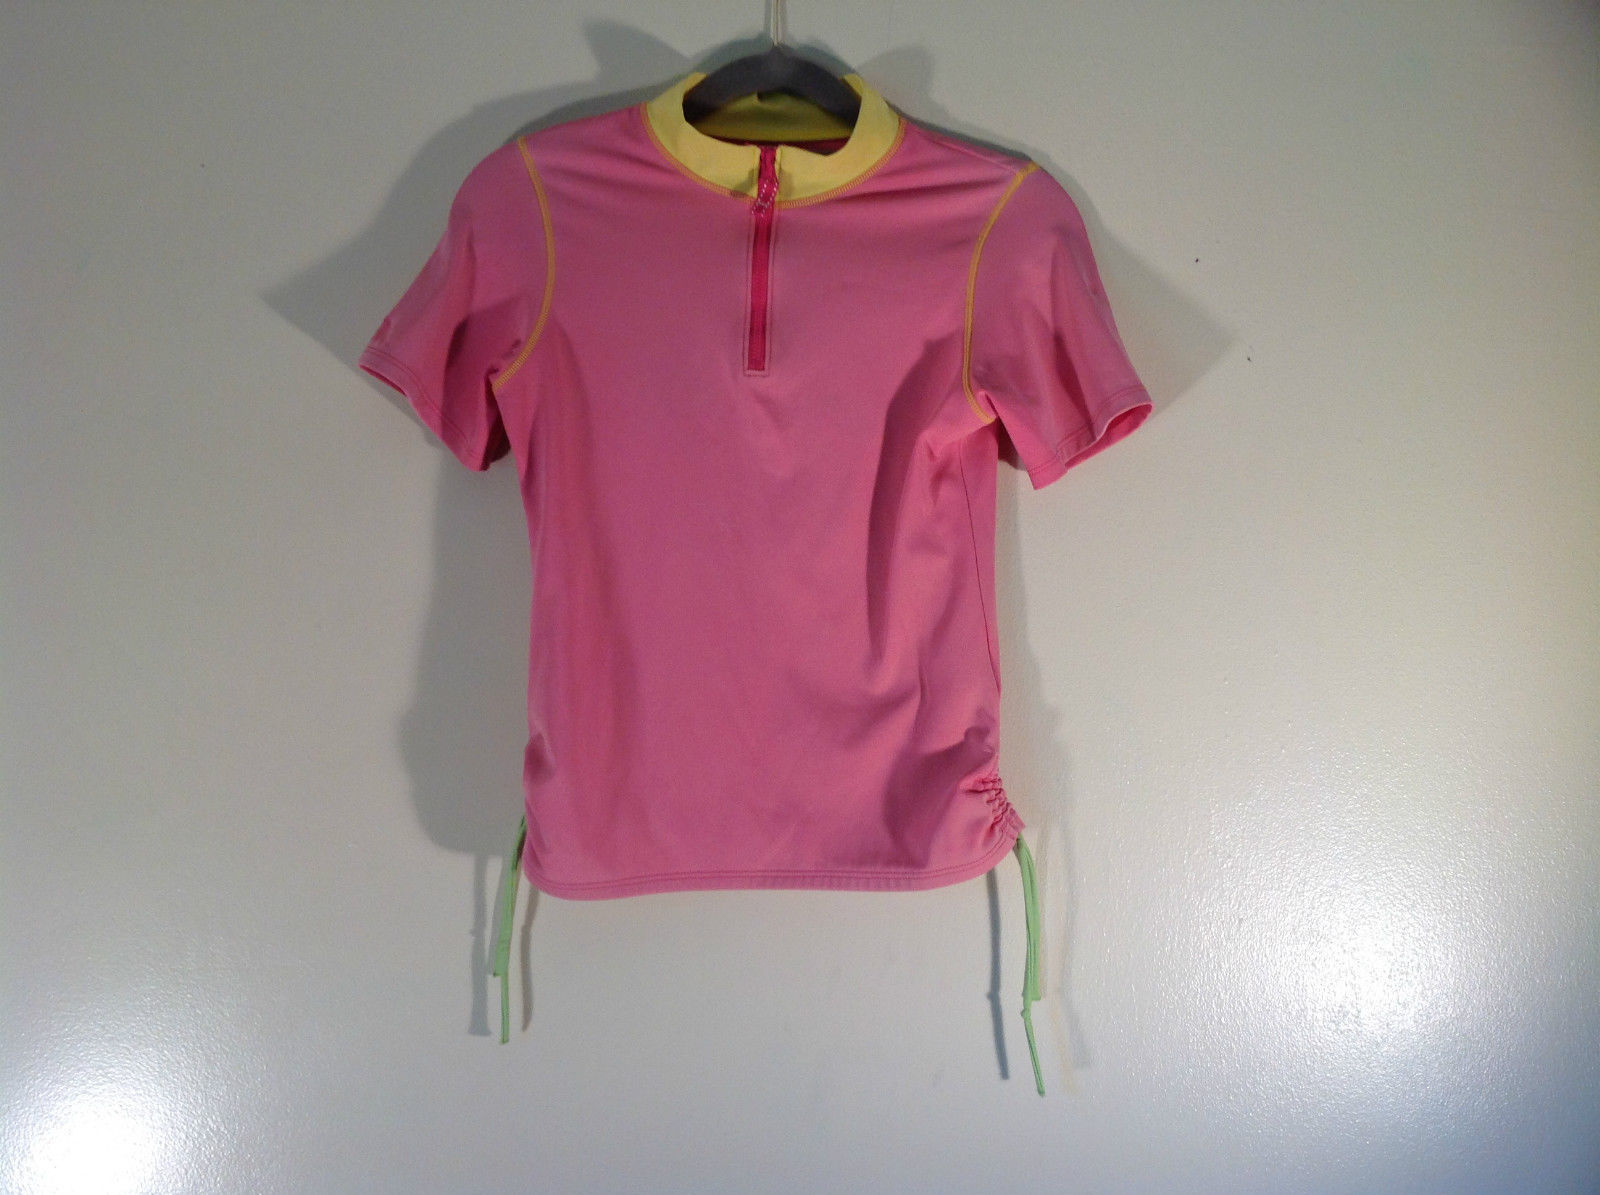 Size Medium 10 to 12 Lands End Pink Stretchy Short Sleeve Top Good Condition